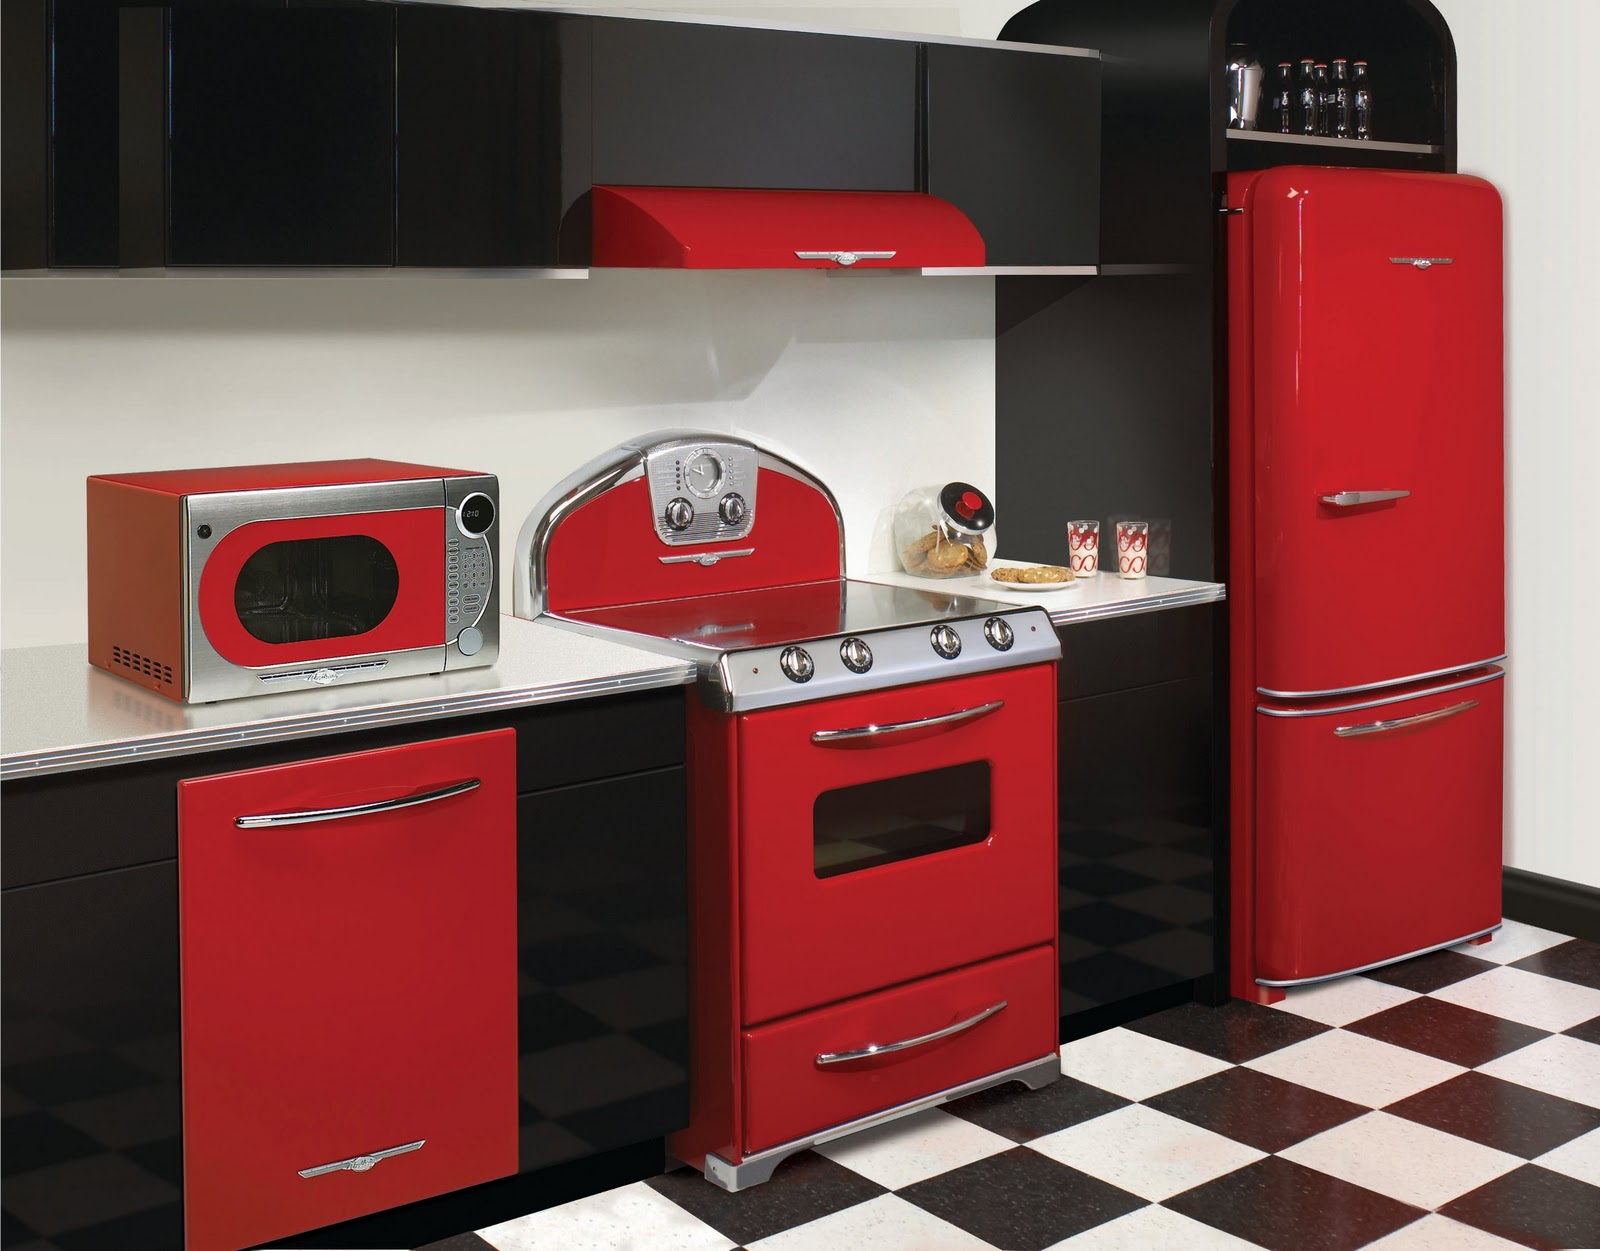 Vintage looking refrigerators - Kitchen And Residential Design Elmira S Northstar Series Is Now